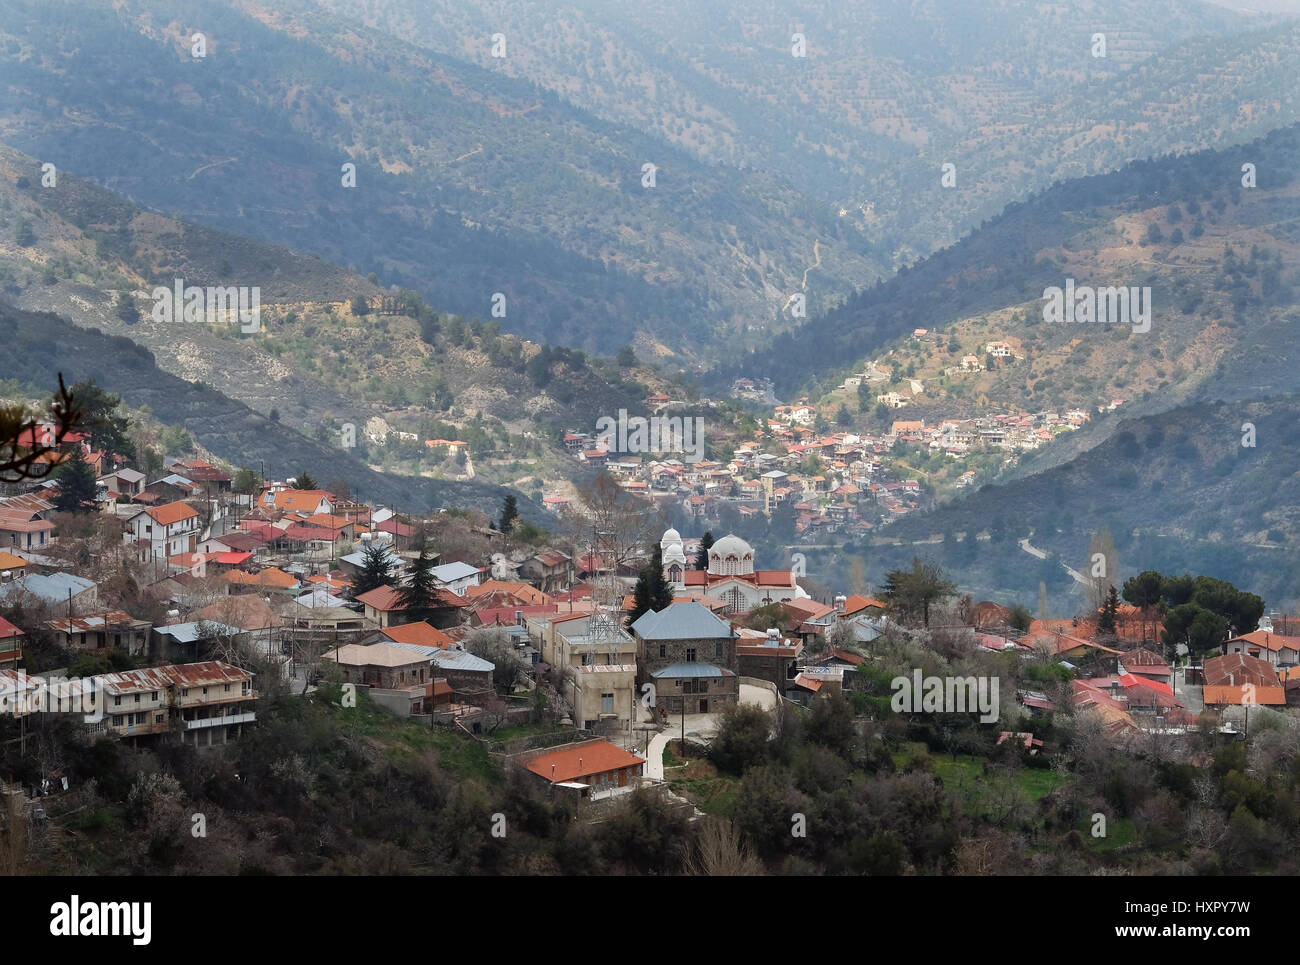 Pedoulas village in the Troodos mountains, Republic of Cyprus - Stock Image